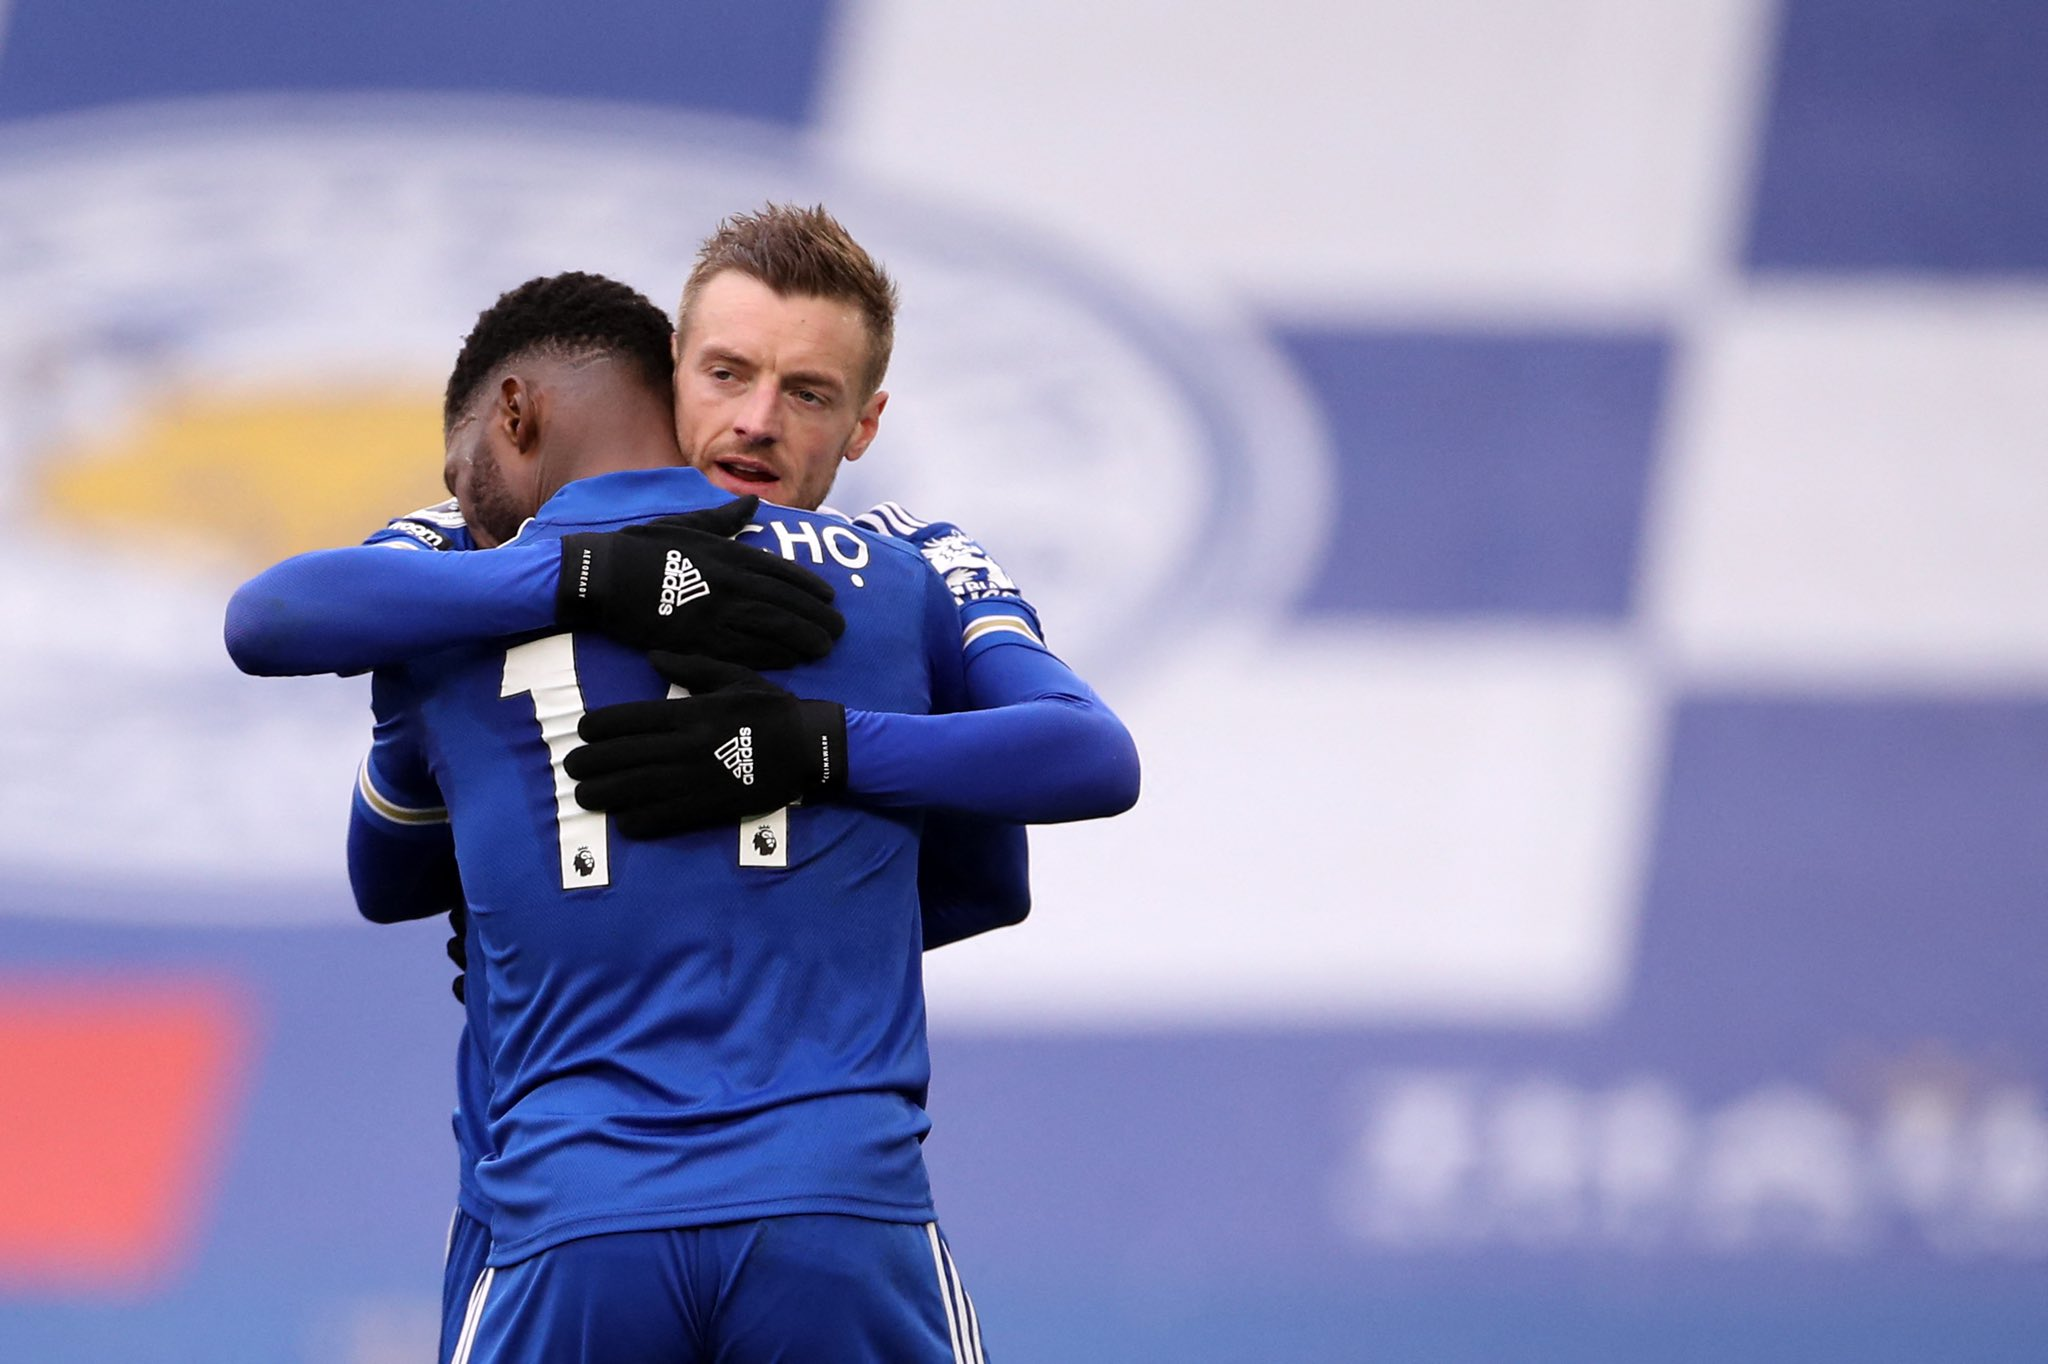 Vardy Congratulates Iheanacho After Netting Hat-trick Against Sheffield United